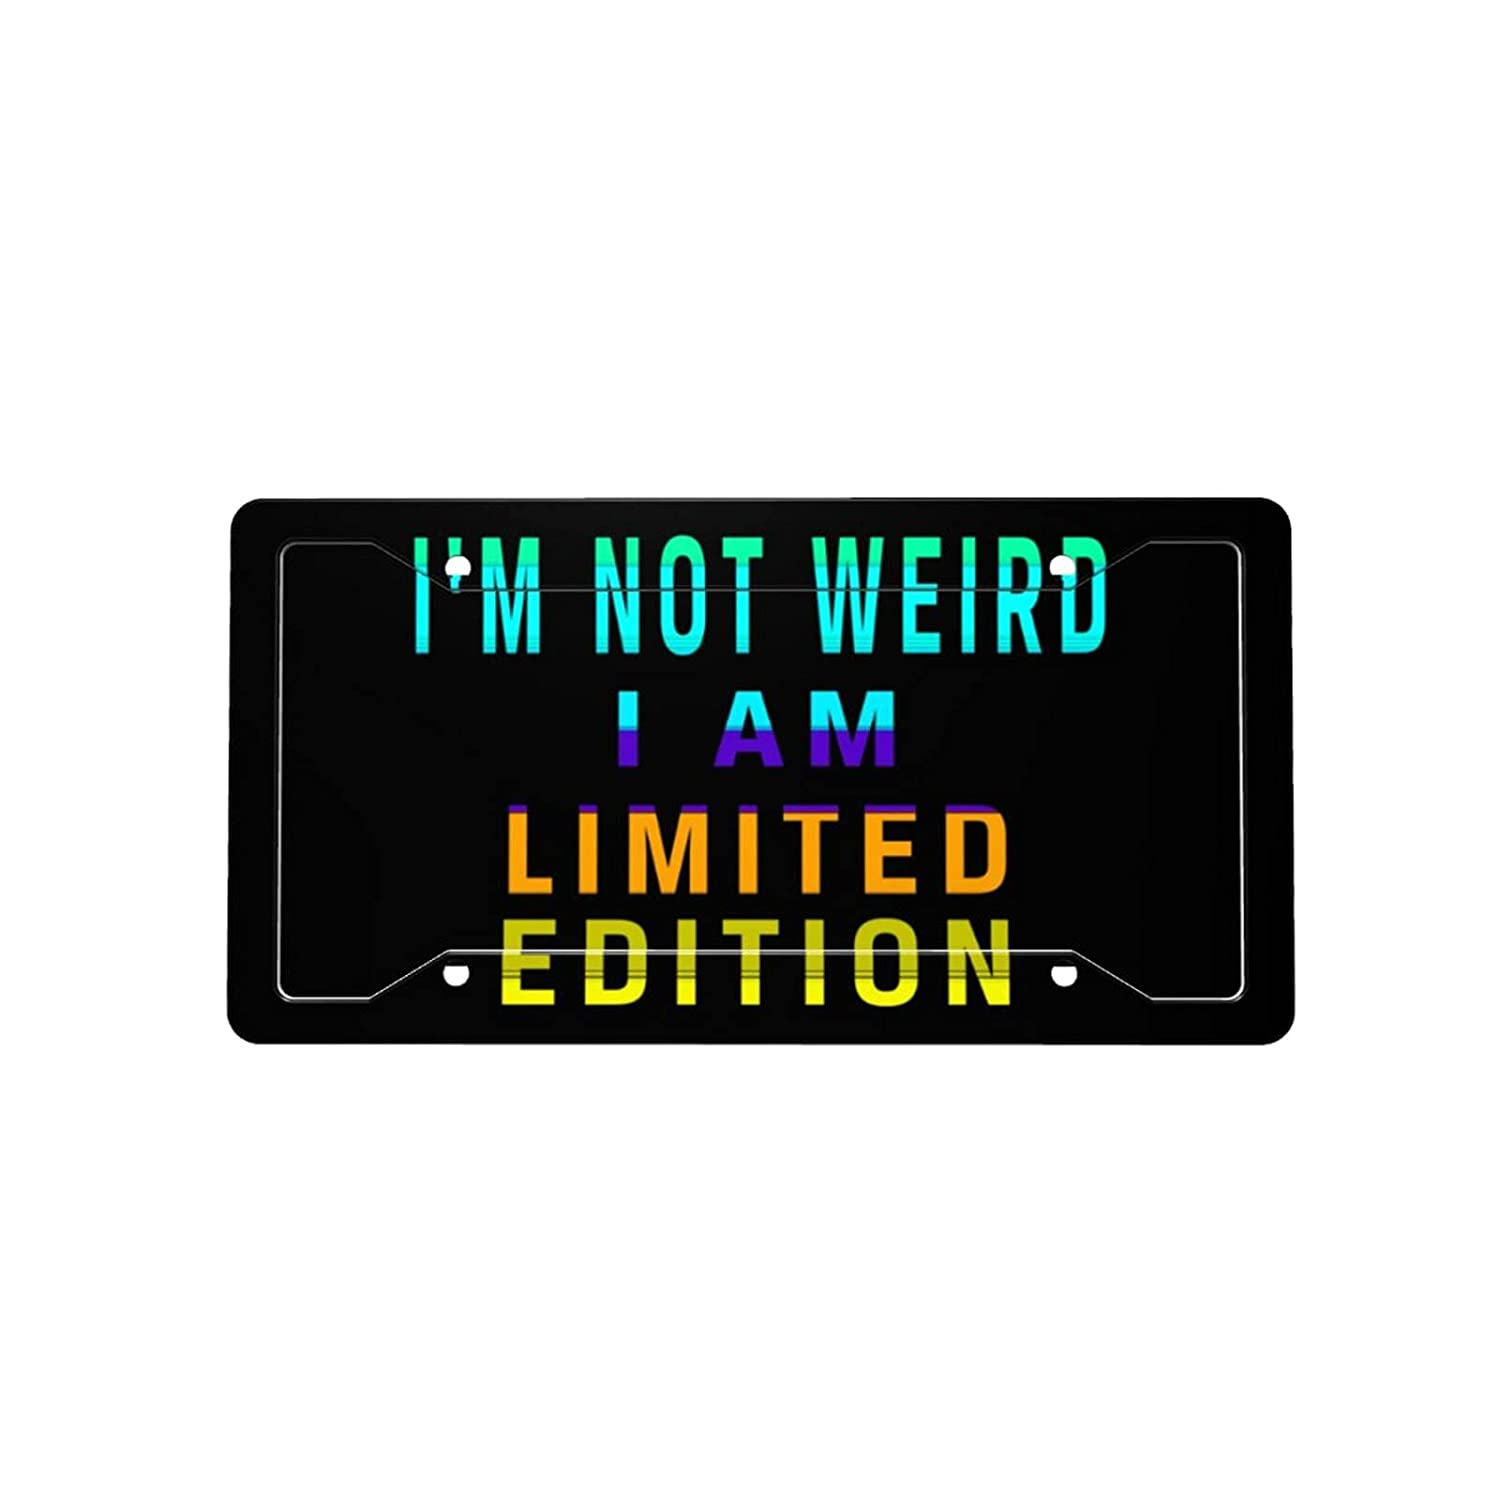 I'm Not Weird I Direct store Am Limited Car Decorative Plate Edition Bombing free shipping License